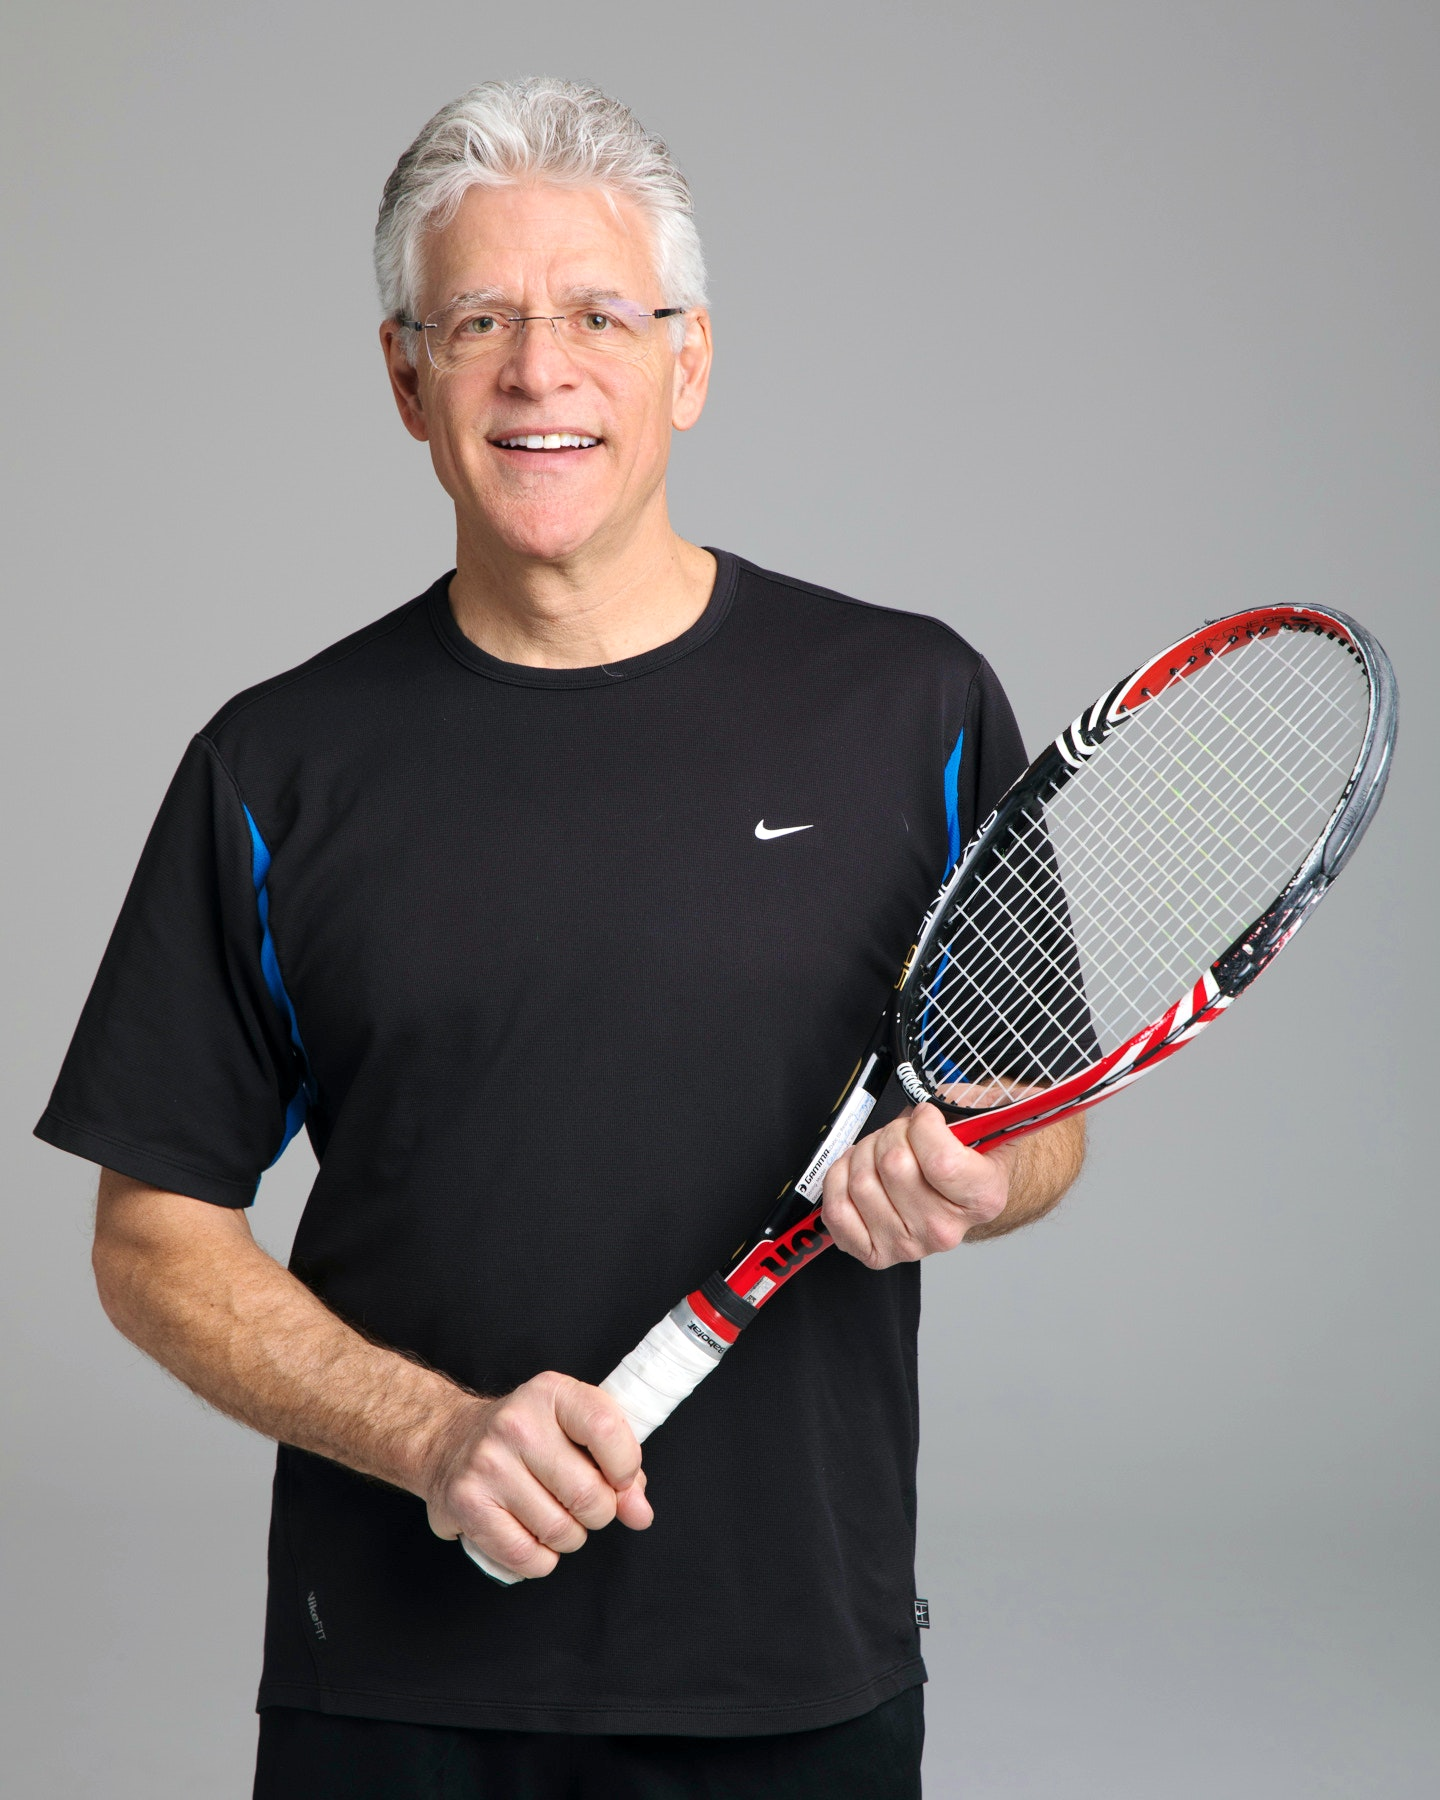 Michael K. teaches tennis lessons in Phialdelphia, PA